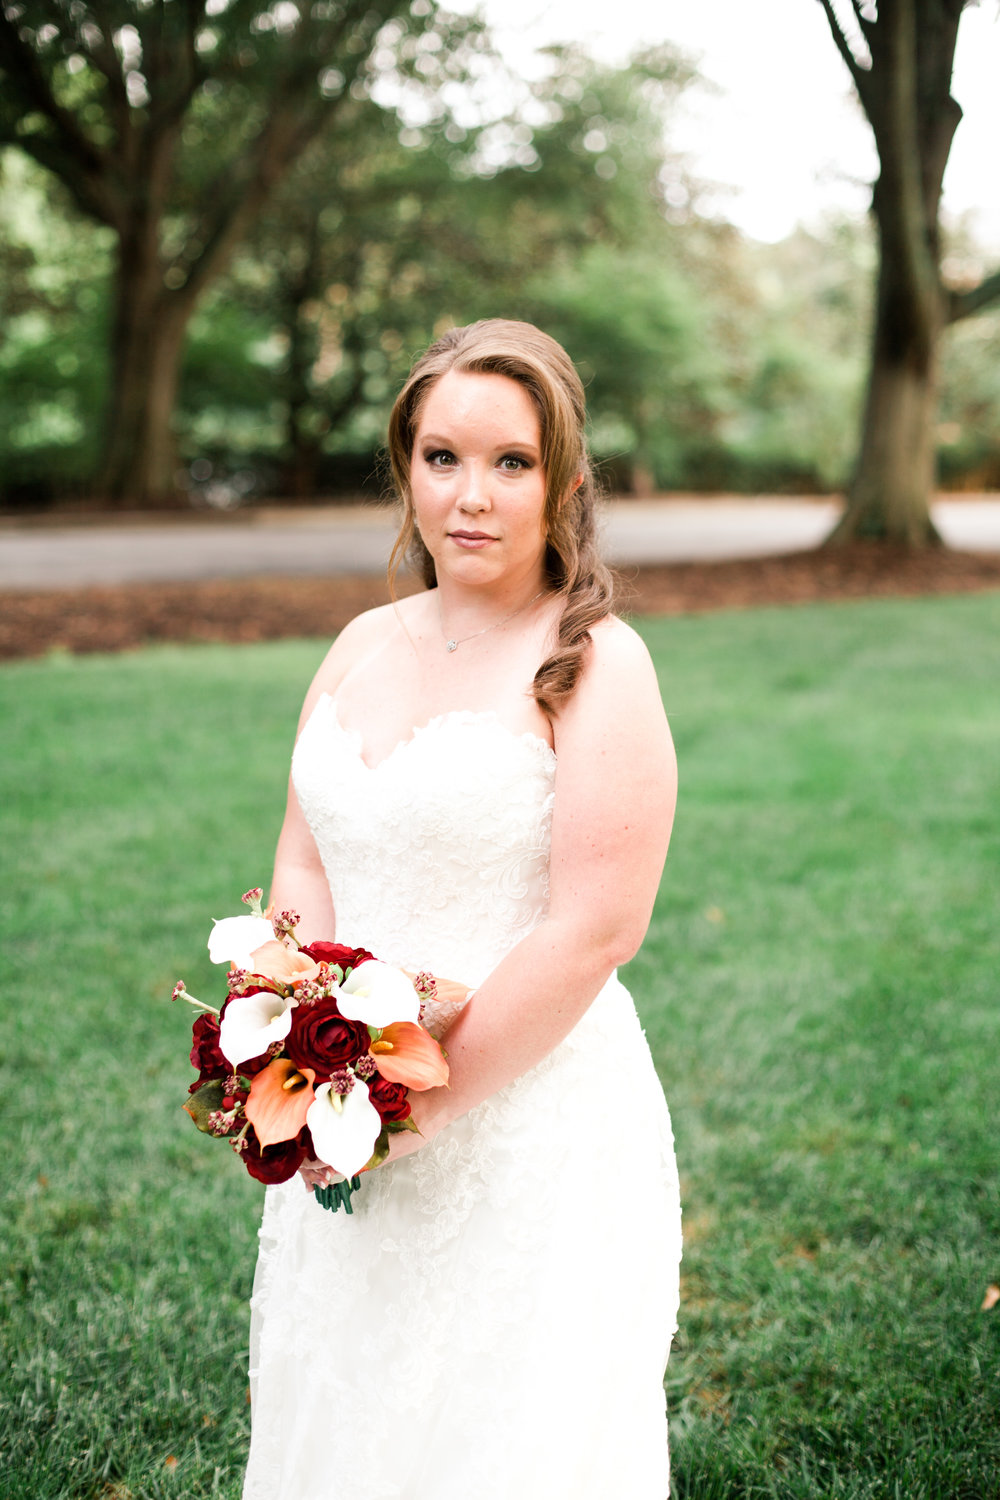 gabbie_bridal_poured_out_photography-51.jpg